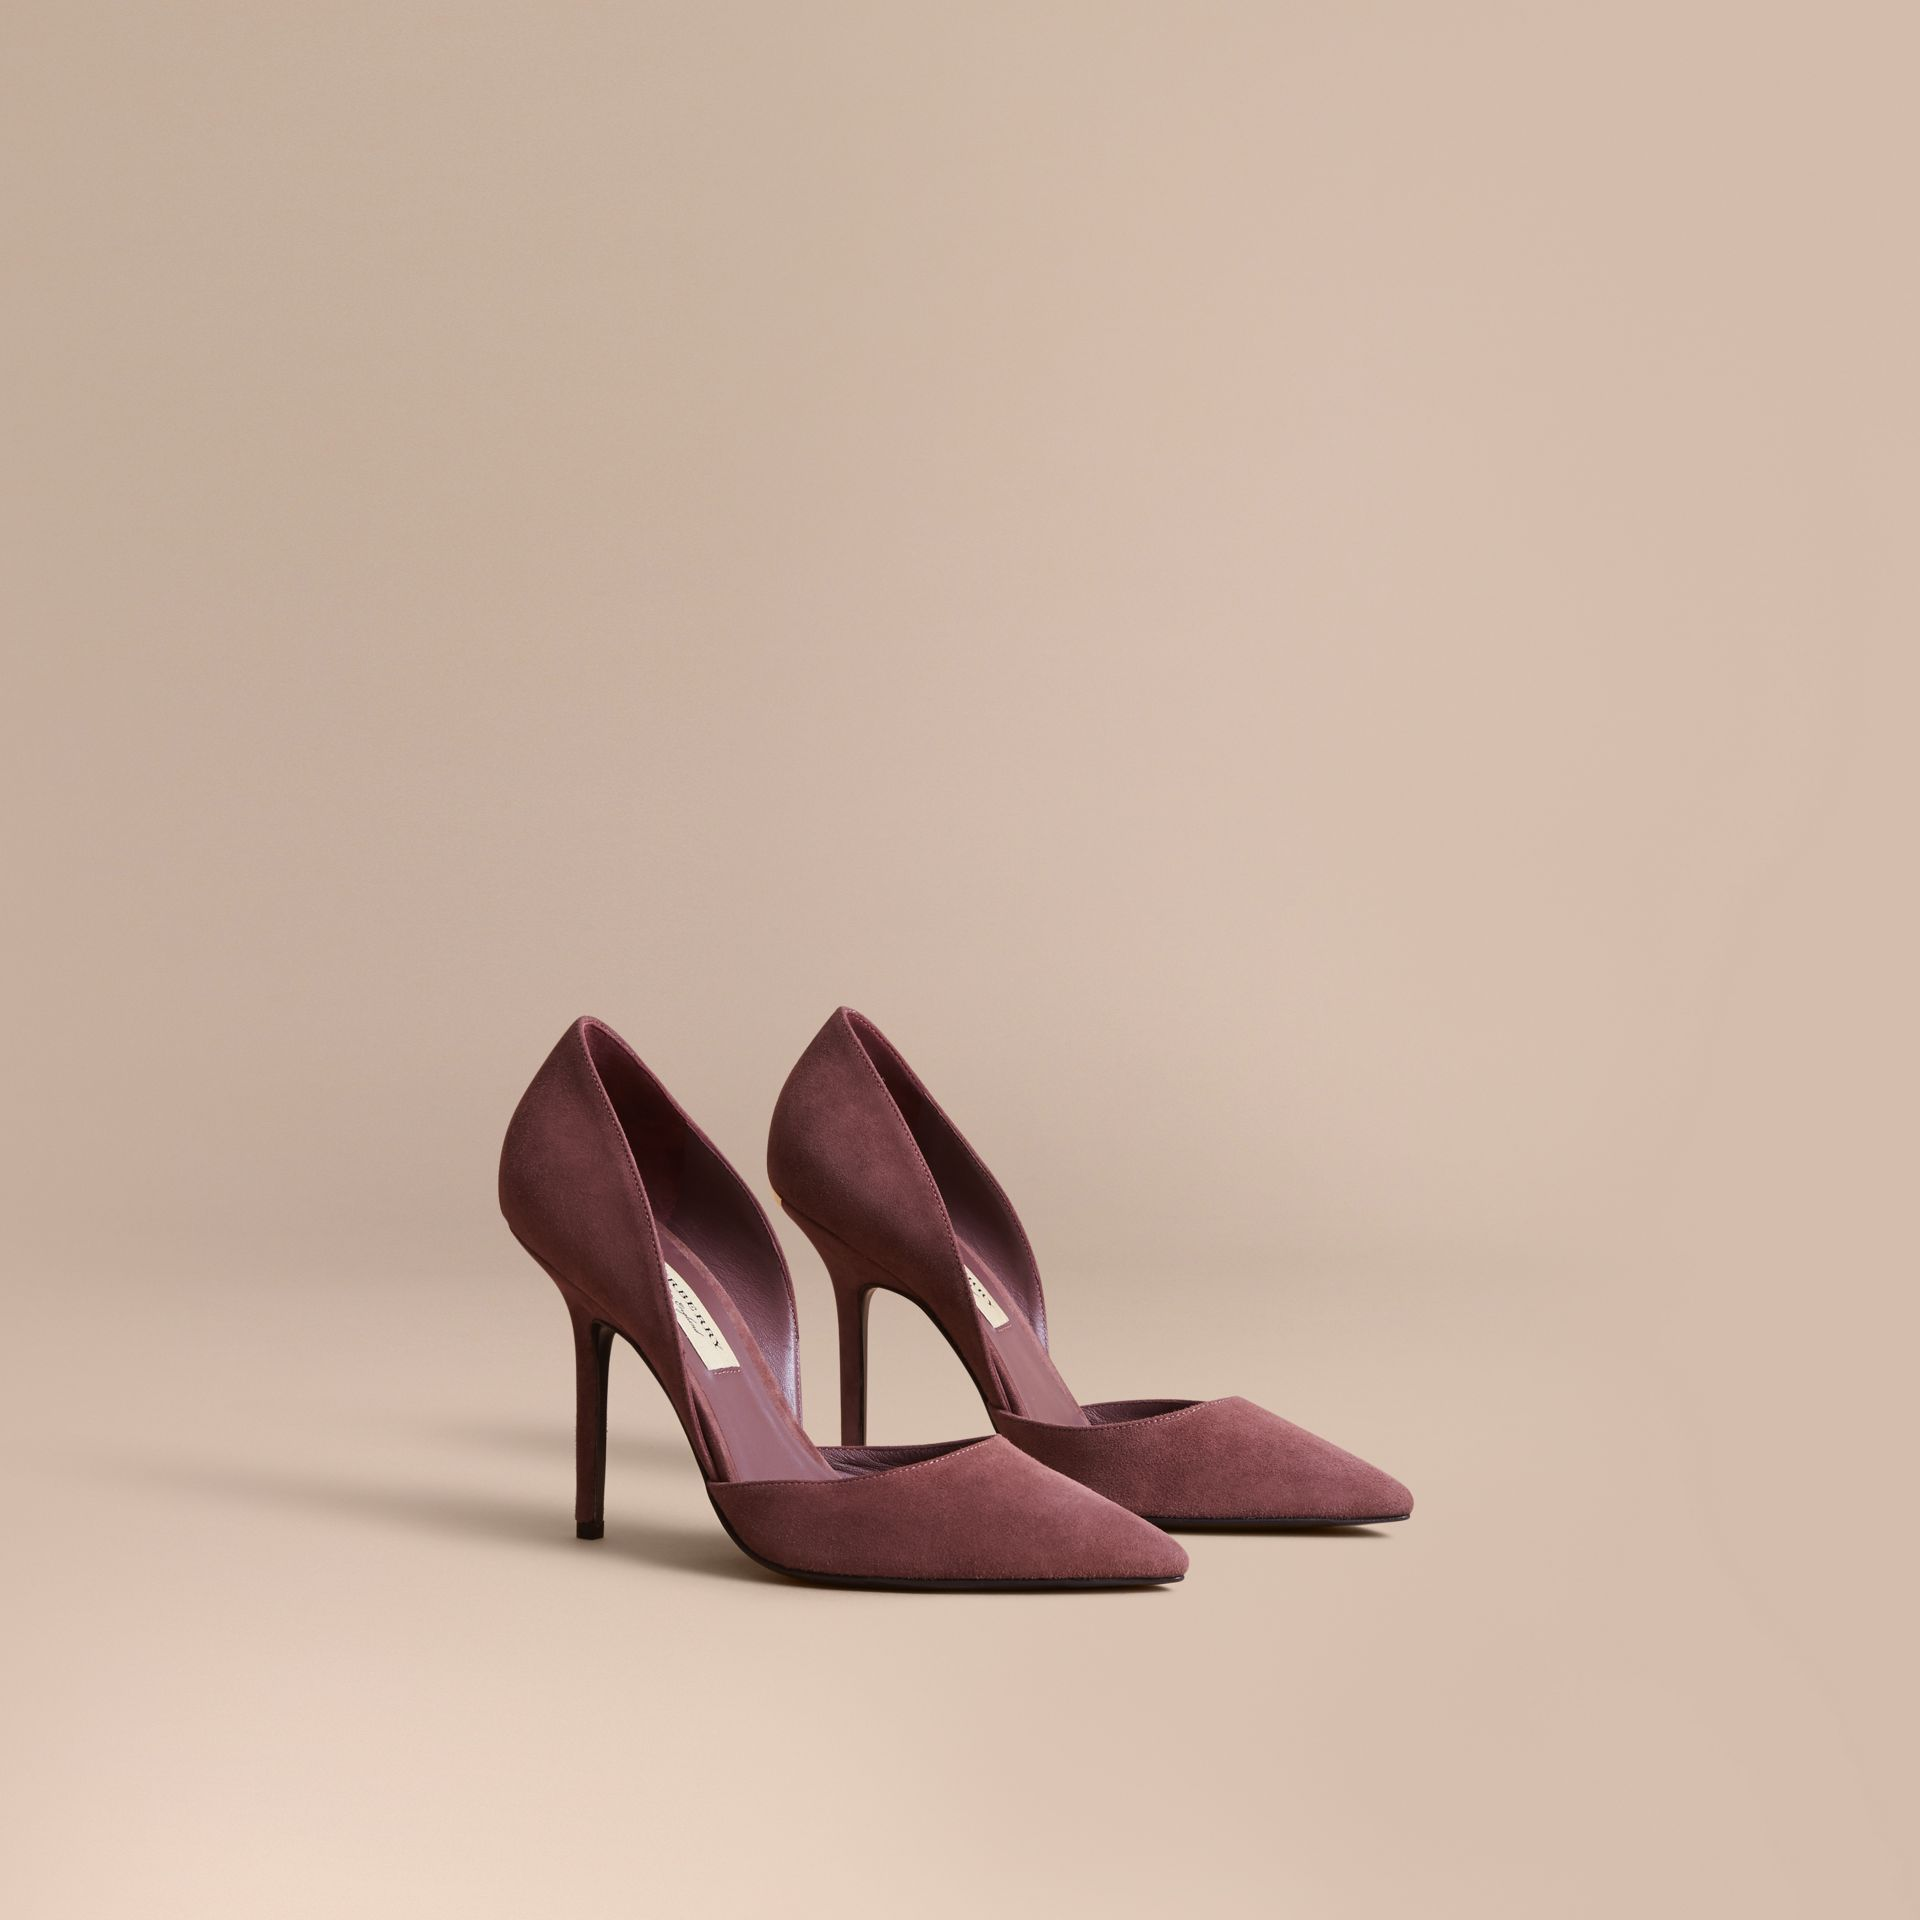 Escarpins d'Orsay à bout pointu en cuir velours (Rose Taupe) - Femme | Burberry - photo de la galerie 1